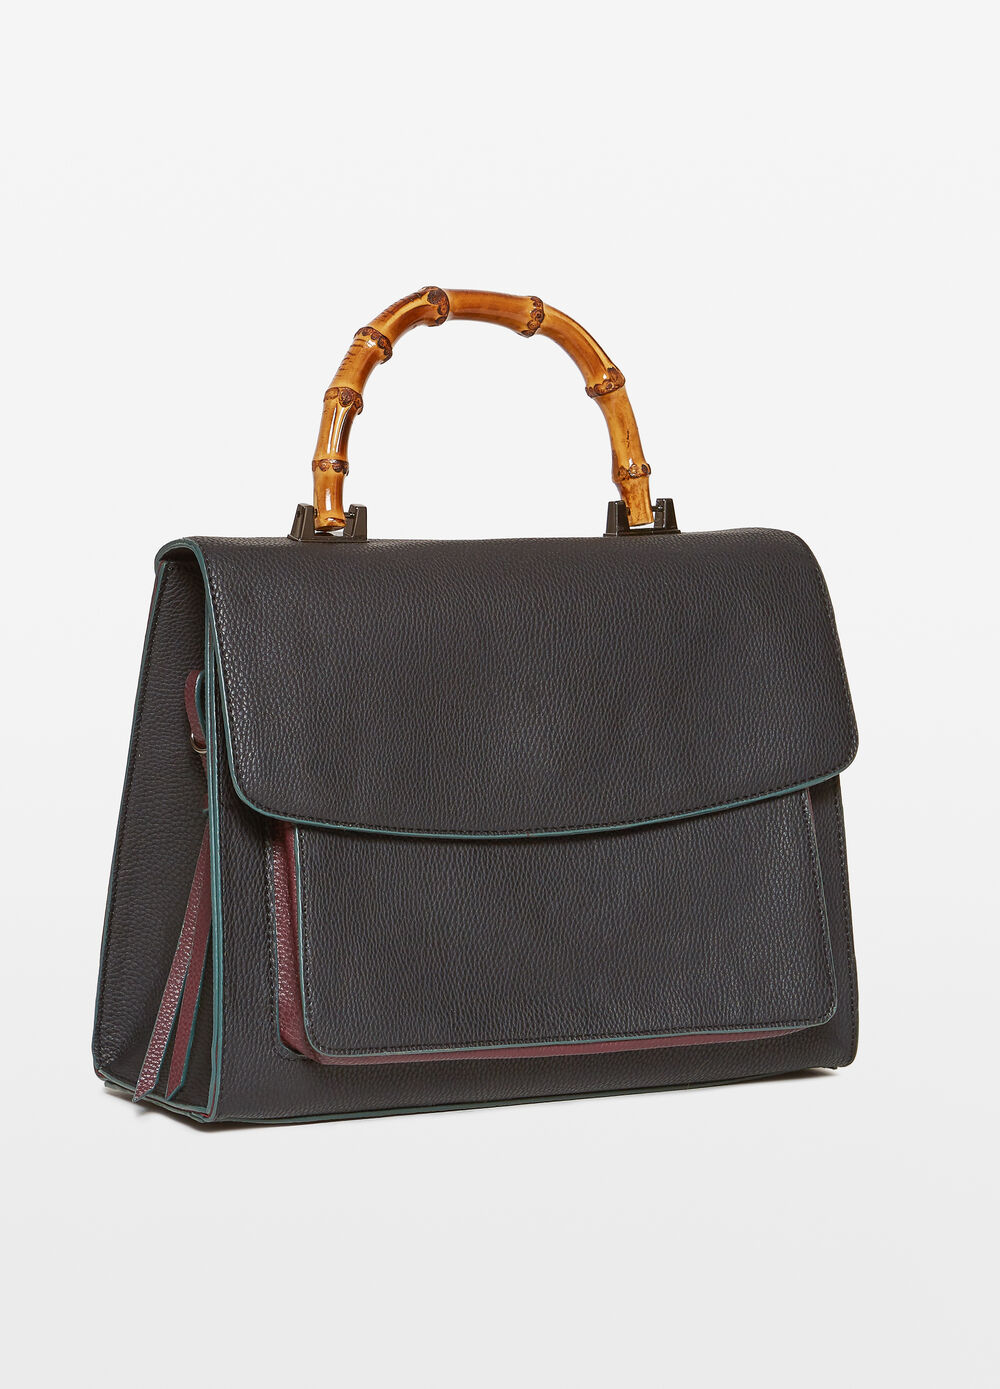 Briefcase with real bamboo handle